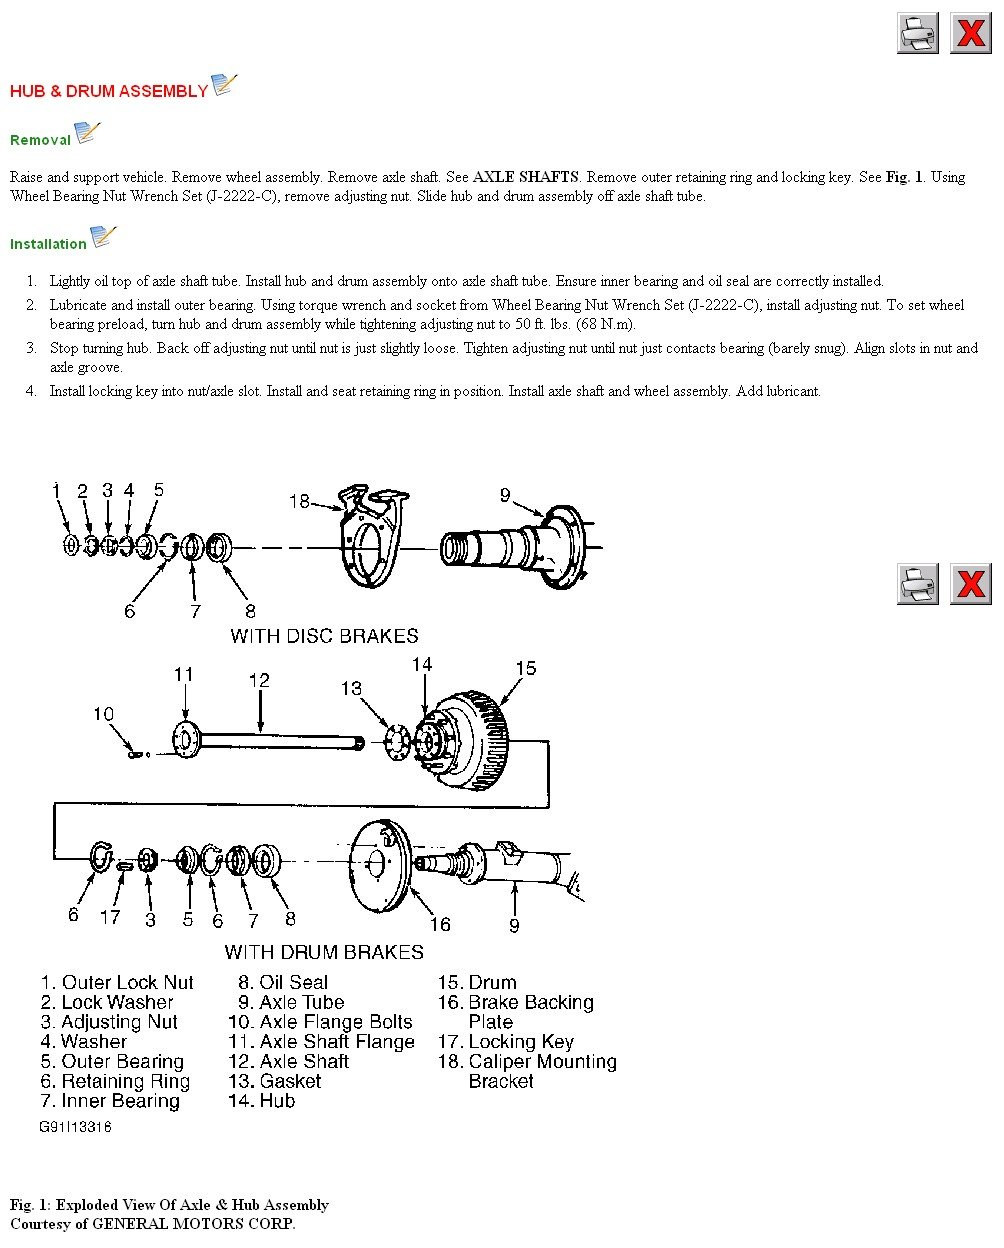 Chevy 2500 Rear Axle Diagram Guide And Troubleshooting Of Wiring Gmc 1999 2500hd Specs Upcomingcarshq Com End Seals Bike Assembly